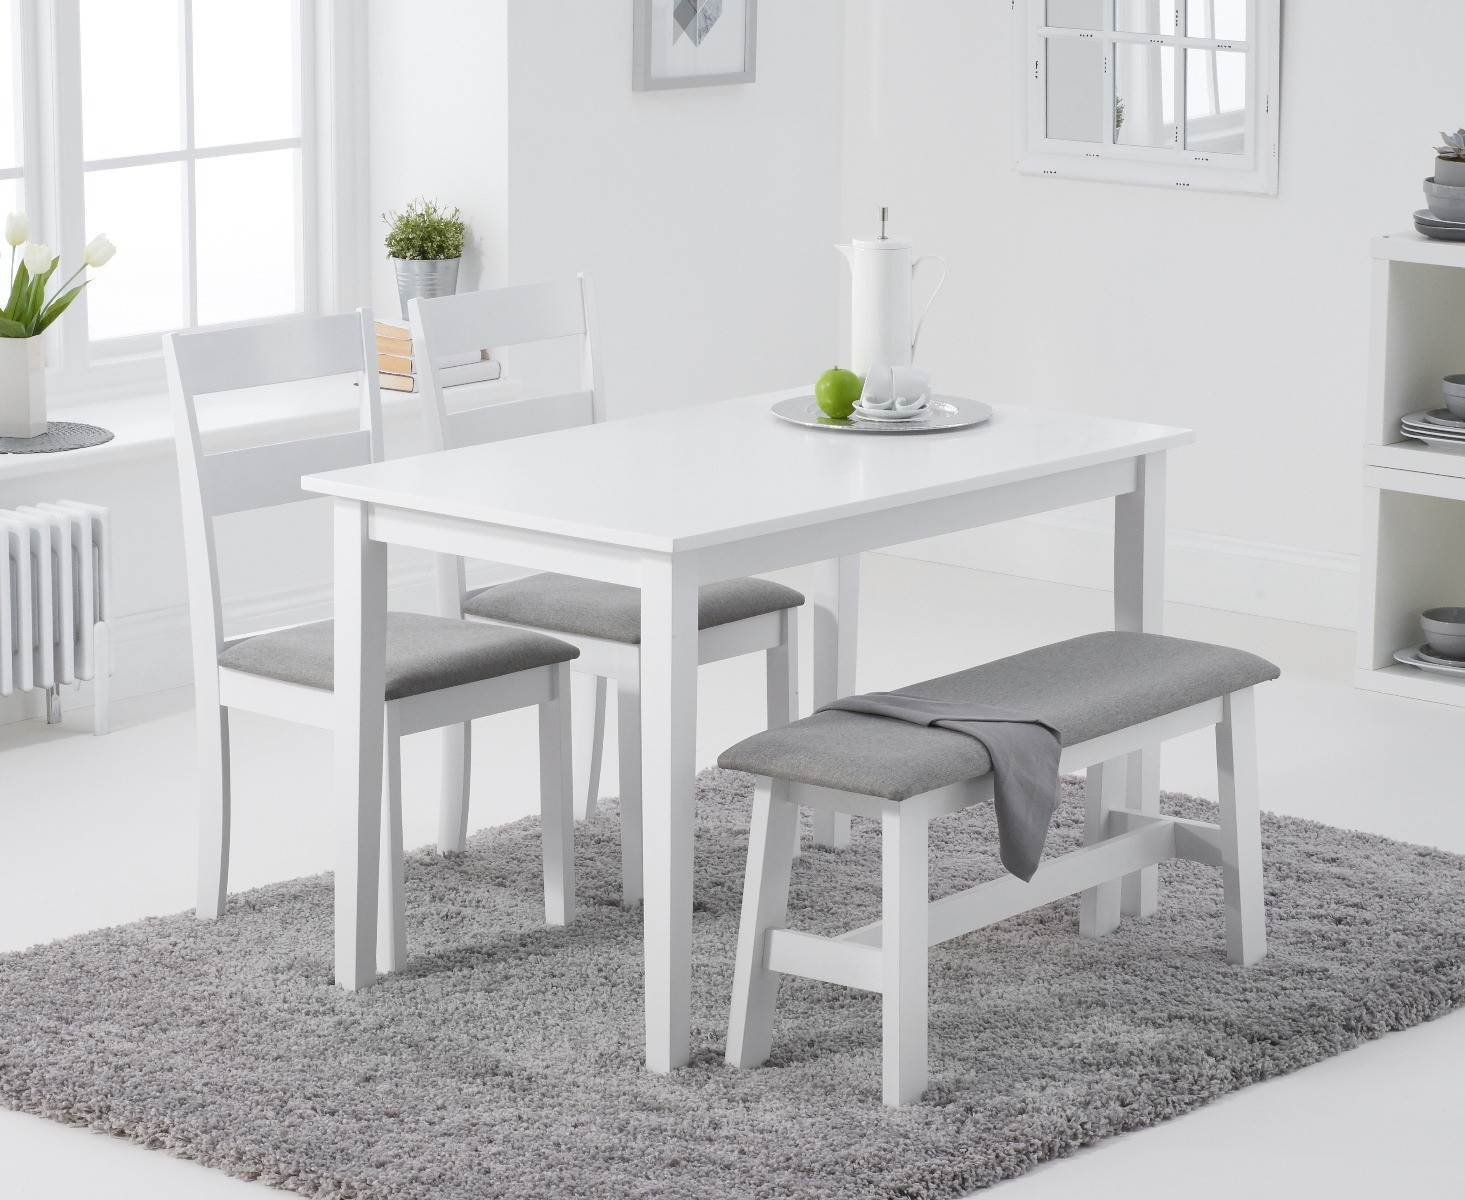 Product photograph showing Chiltern 114cm White Table With 2 Chiltern Chairs With Grey Fabric Seats And 1 Bench